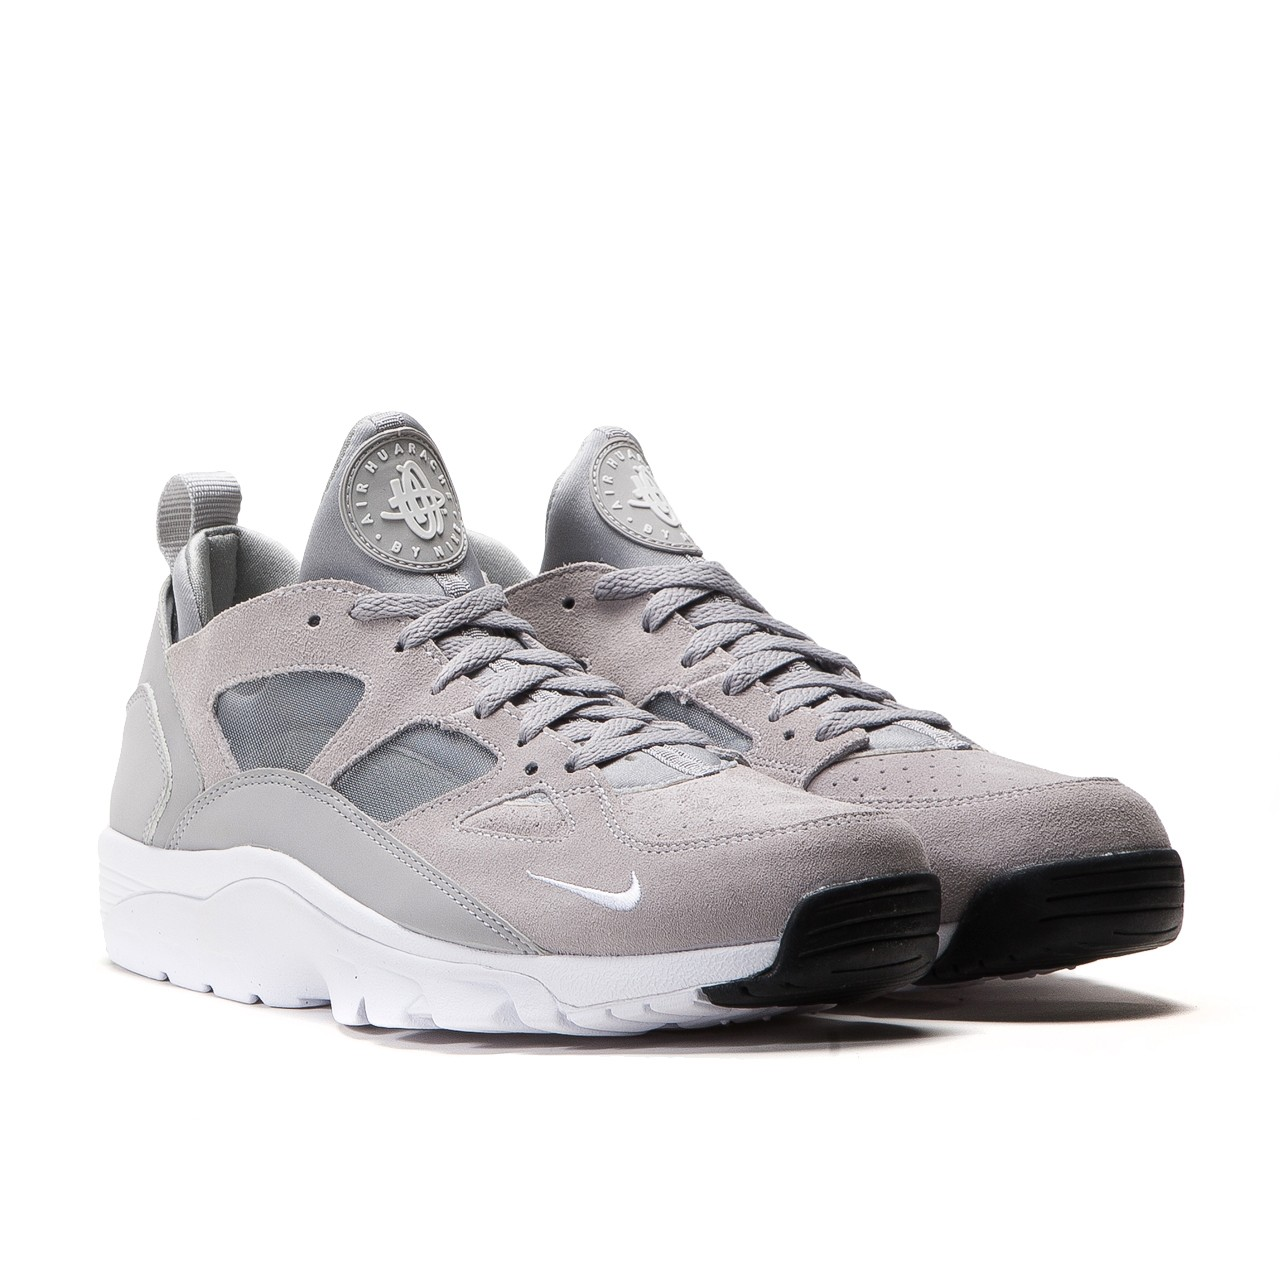 nike-air-trainer-huarache-low-wolf-grey-2